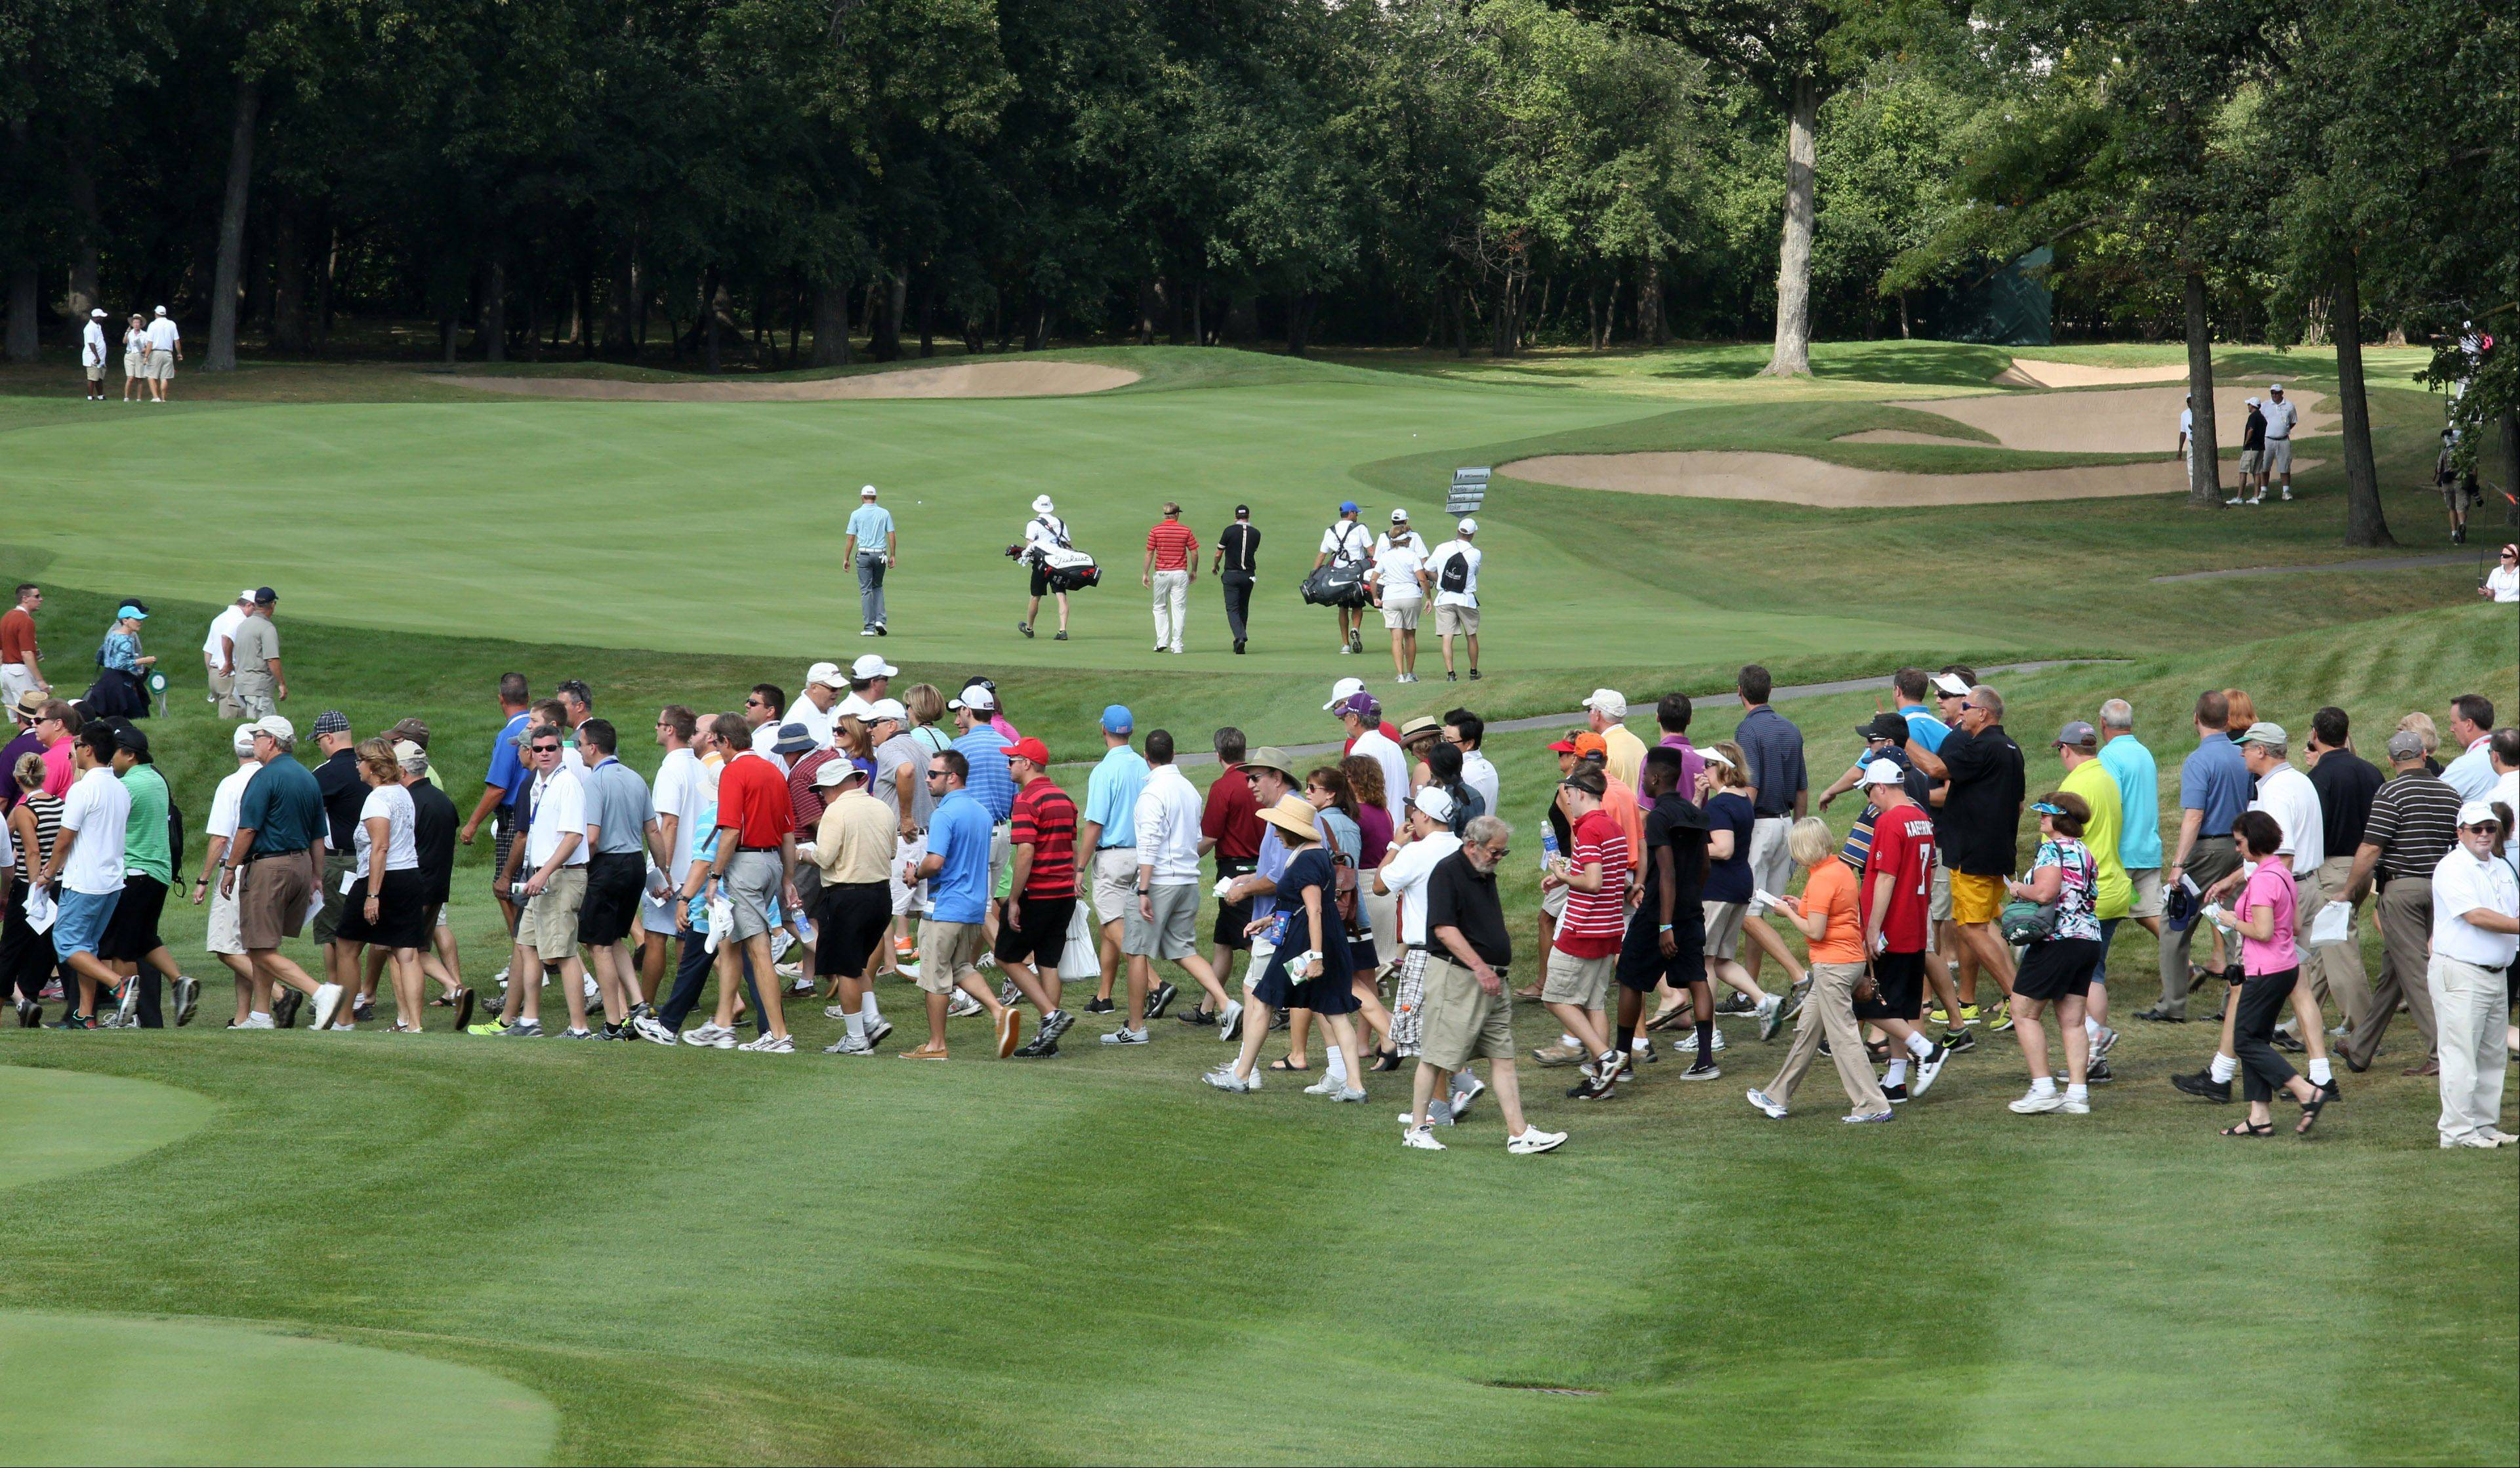 Fans cross the green after golfers in the first group. Russell Henley, John Merrick, and Jimmy Walker teed off on the 1st hole.